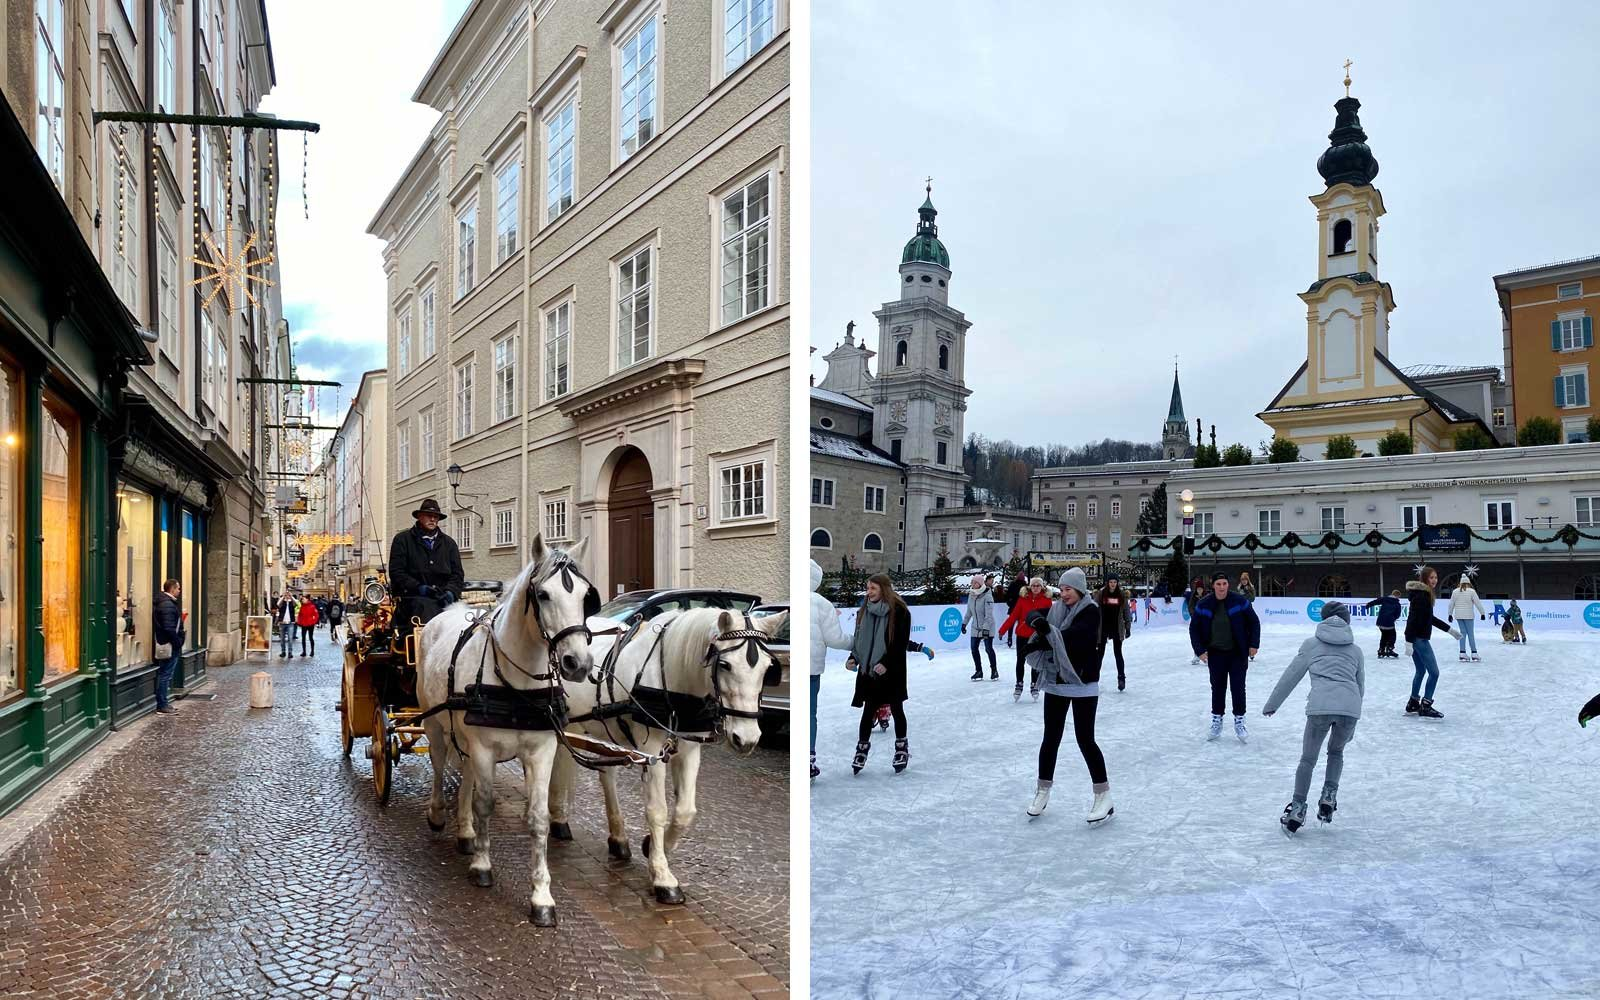 A street with a horse drawn carriage and people ice skating Salzburg, Austria